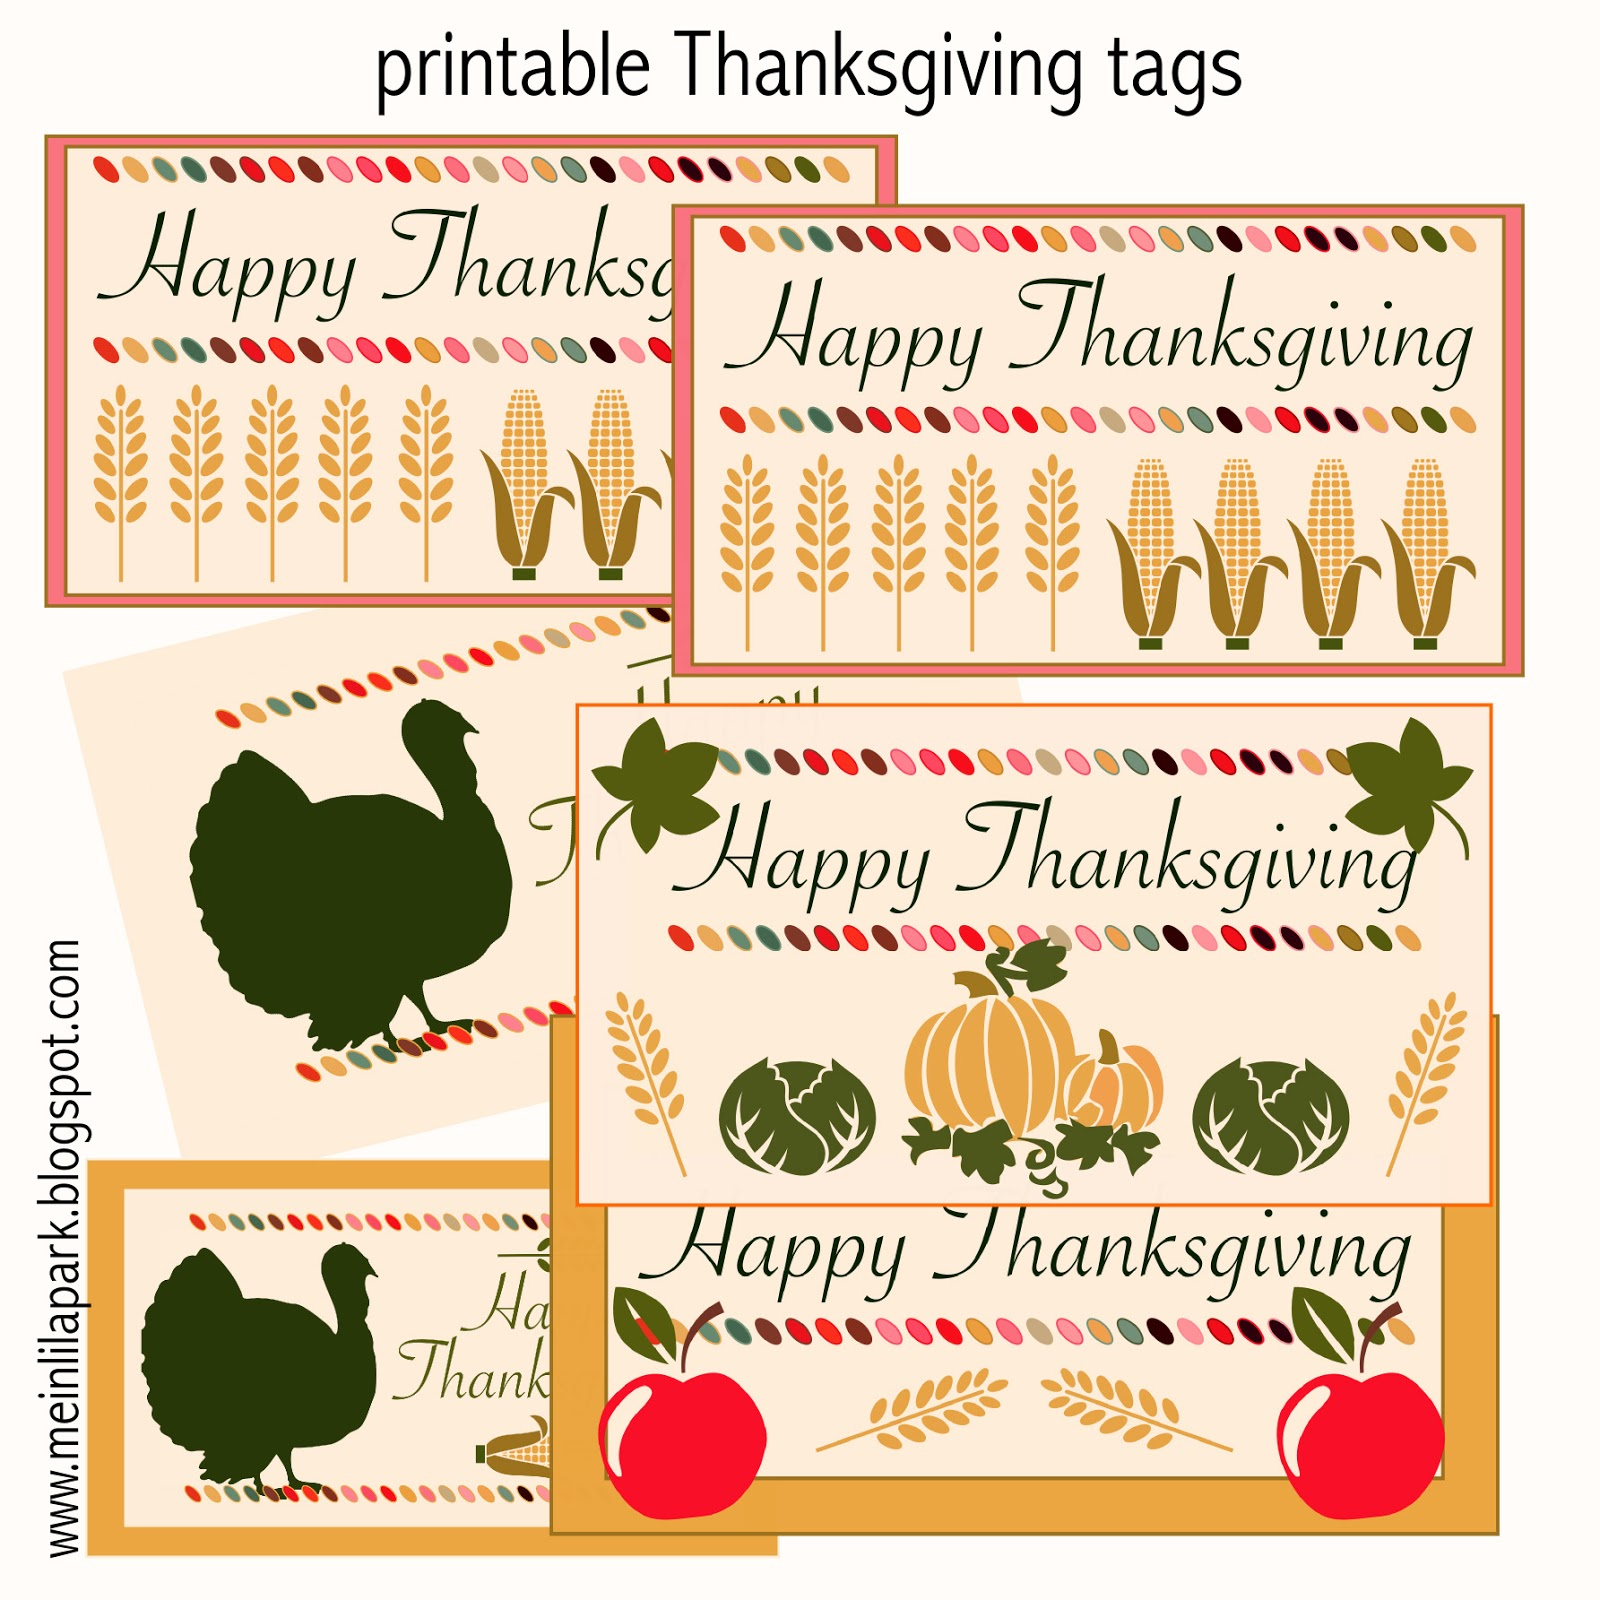 photo about Free Printable Thanksgiving Tags named Absolutely free printable Thanksgiving tags - Druckvorlage Thanksgiving